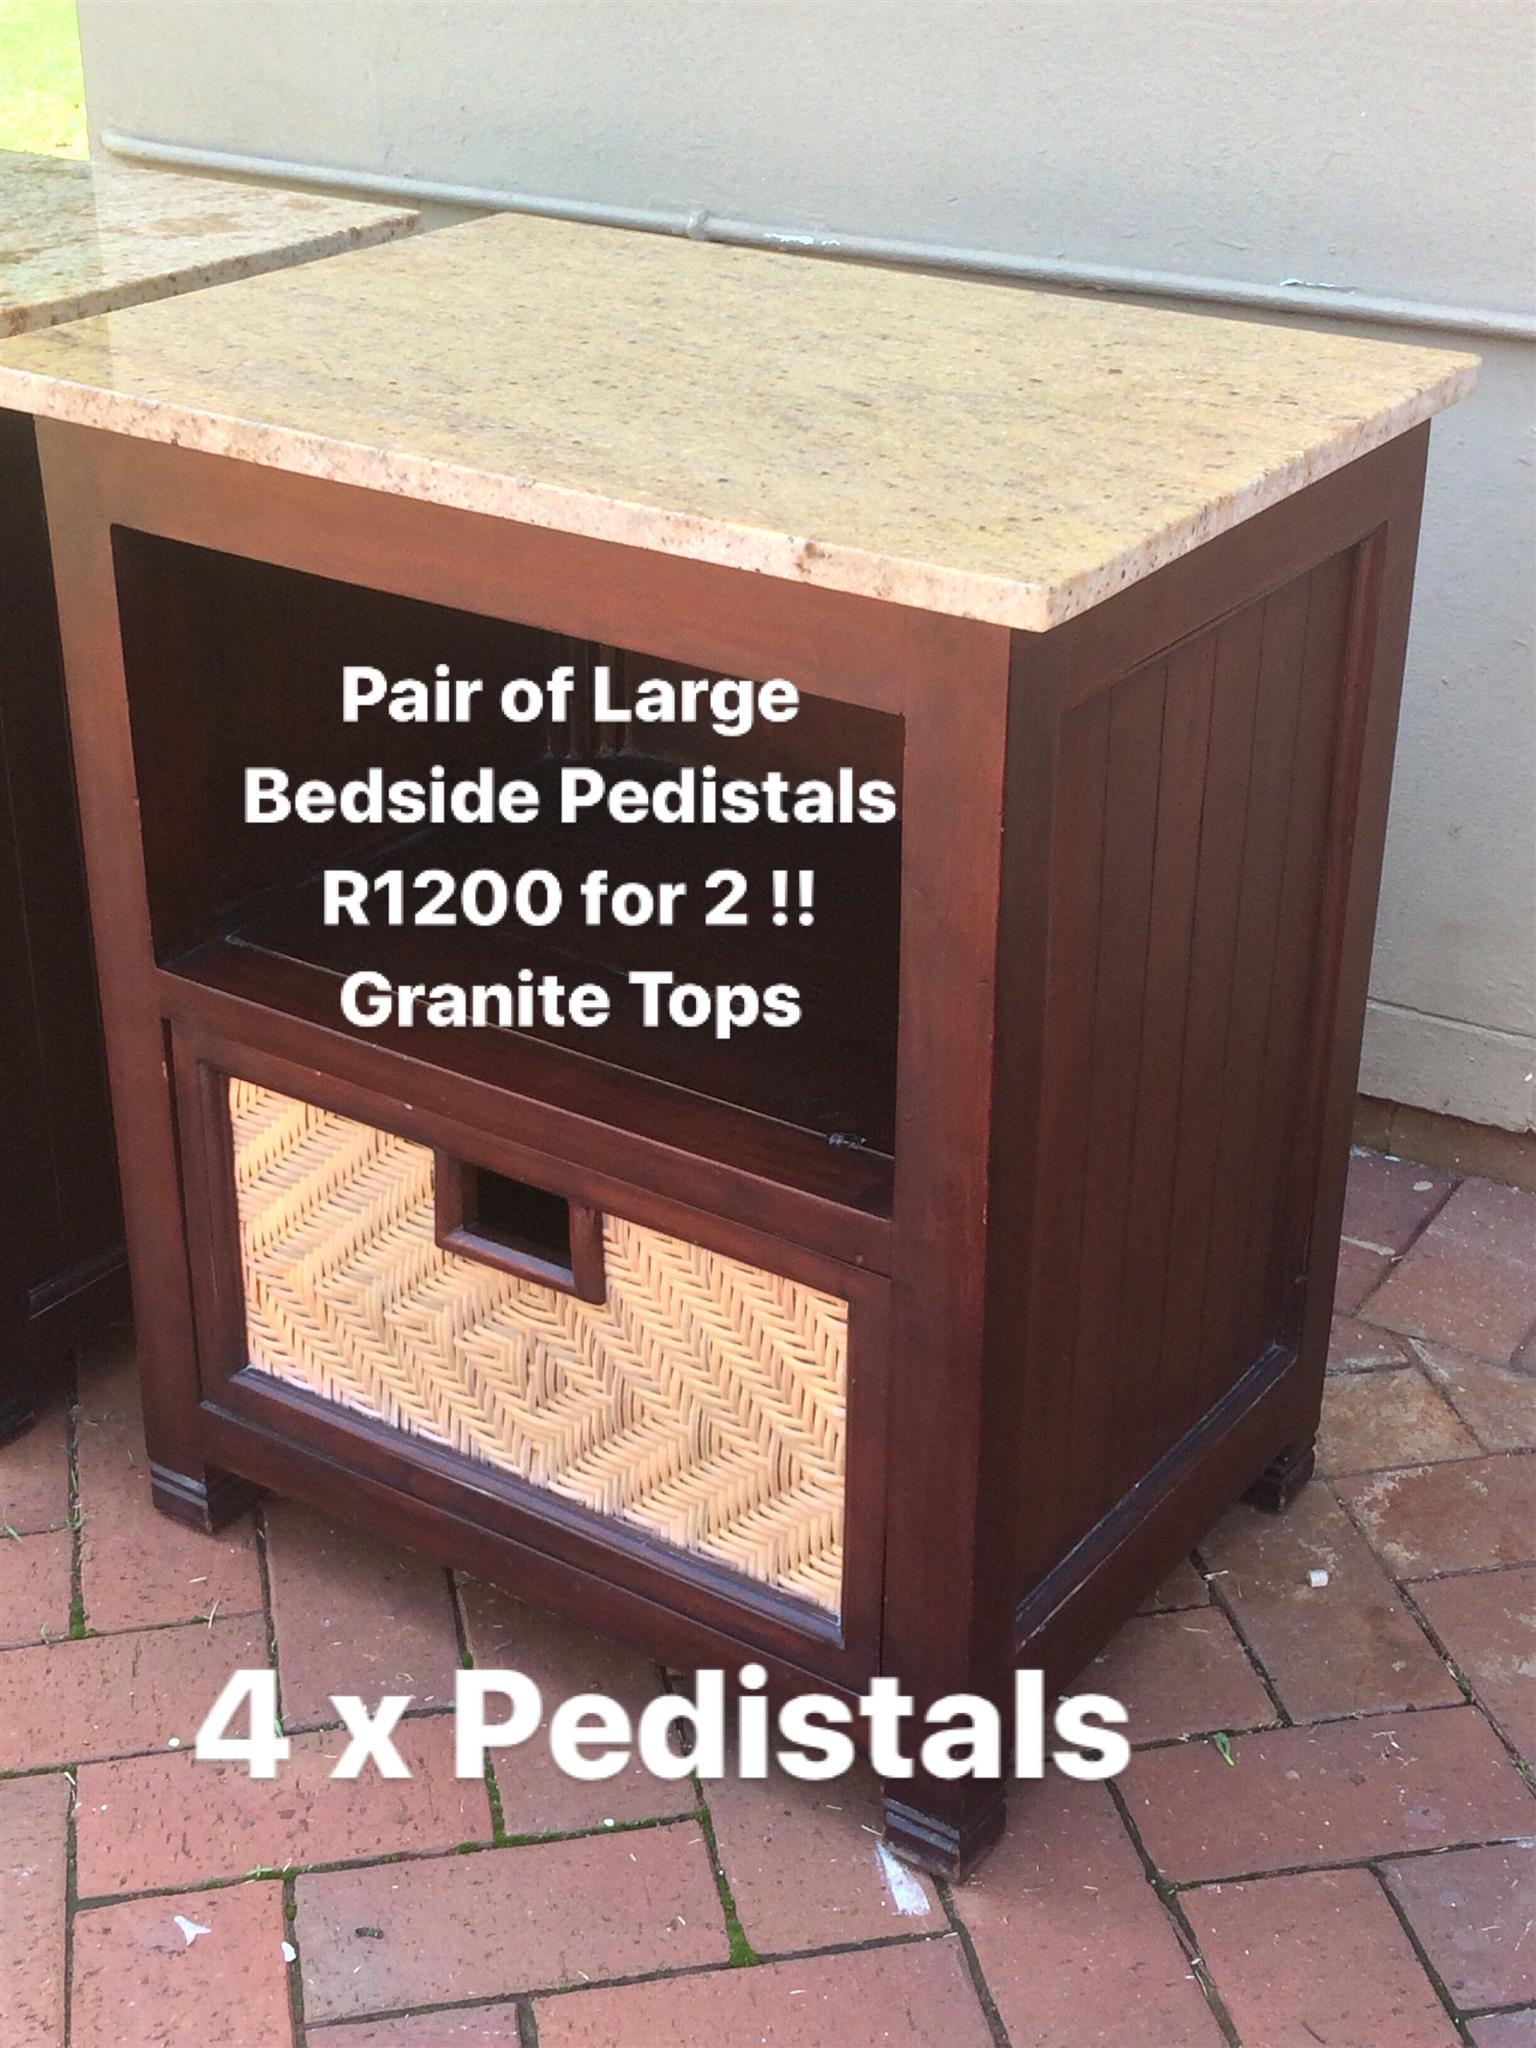 4 x Large Bedside Pedistals with Granite Tops